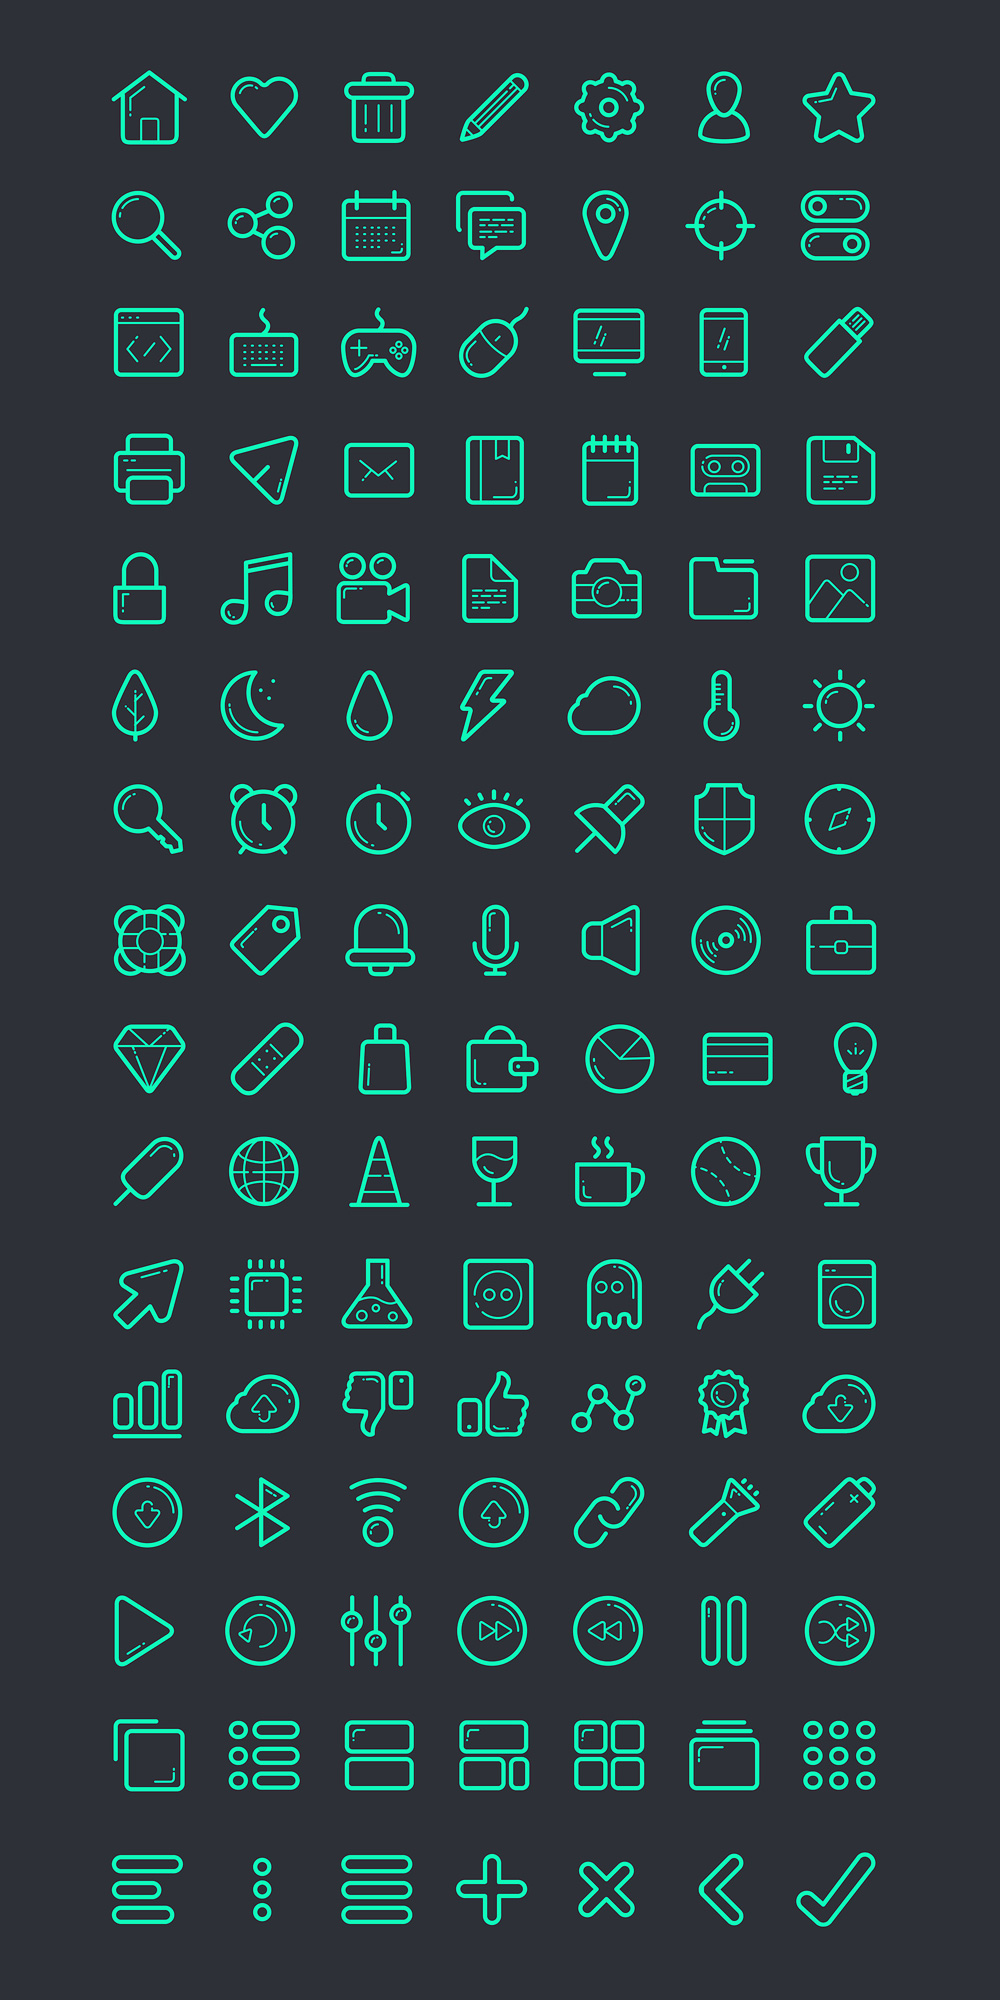 112-free-vector-icons